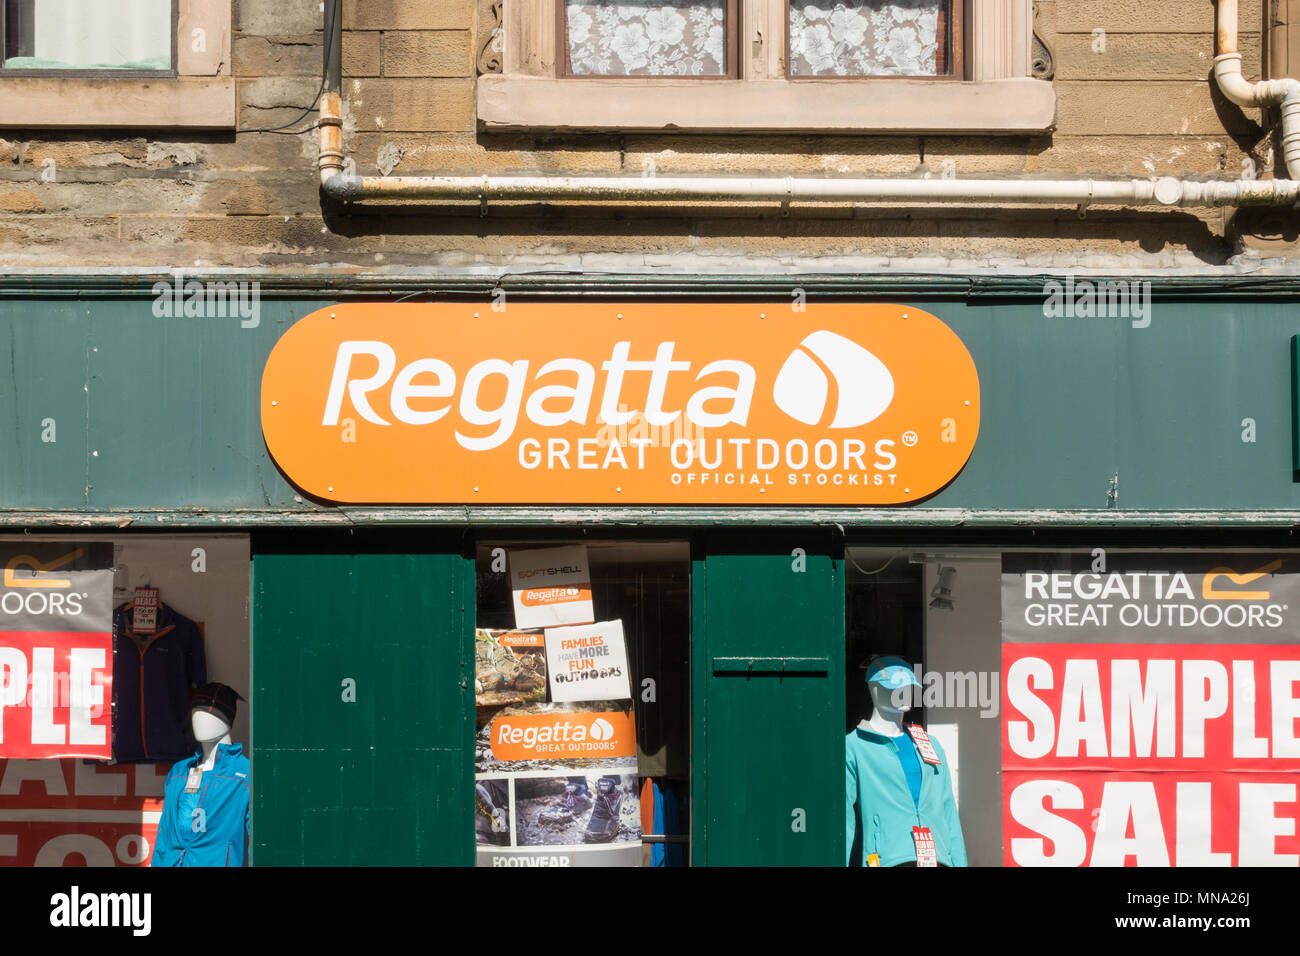 Regatta Great Outdoors store - Stock Image